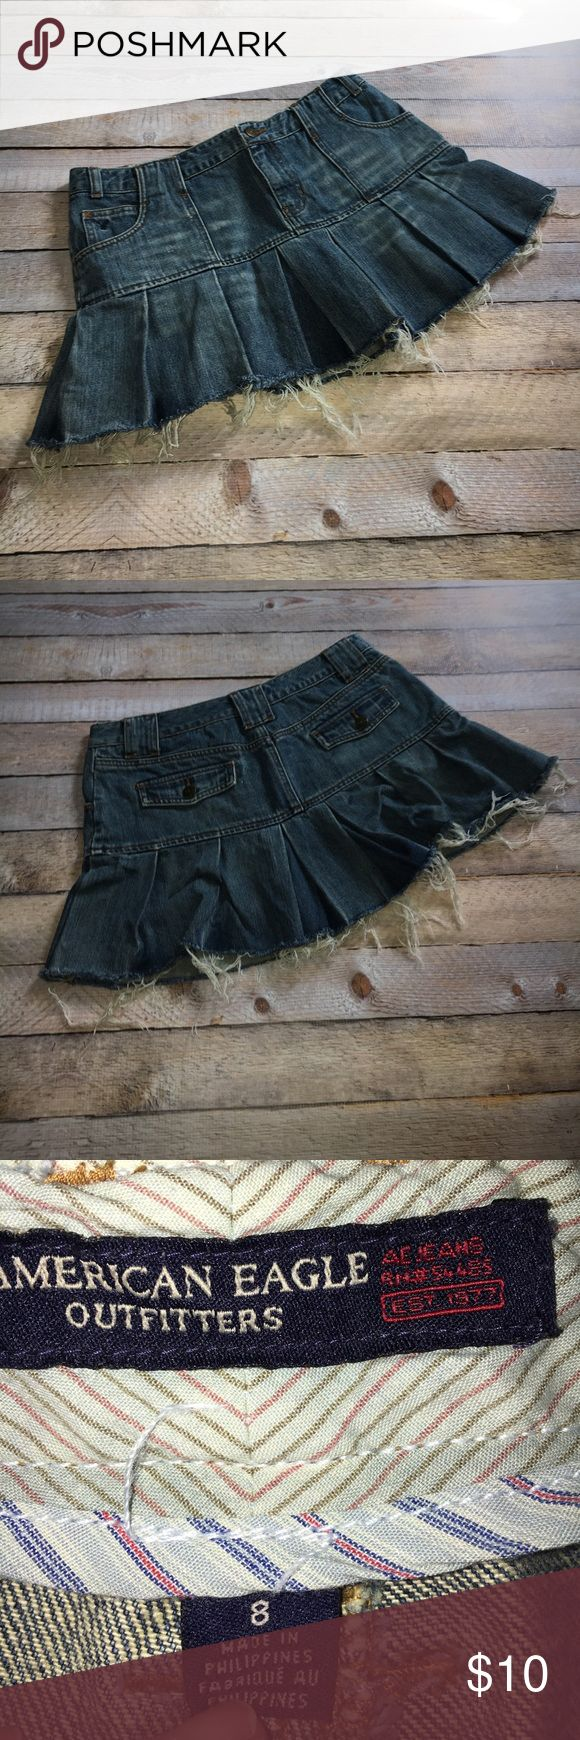 """‼️Sale‼️American Eagle Denim Skirt ✔️American Eagle Denim Skirt ✔️Size 8 ✔️Body 100% cotton ✔️Waist 15 ✔️Length from waist to hem 12"""" ✔️No defects, good  ✔️This is a reposh, just a little short for my taste once I tried it on. SUPER cute!! American Eagle Outfitters Skirts Mini"""